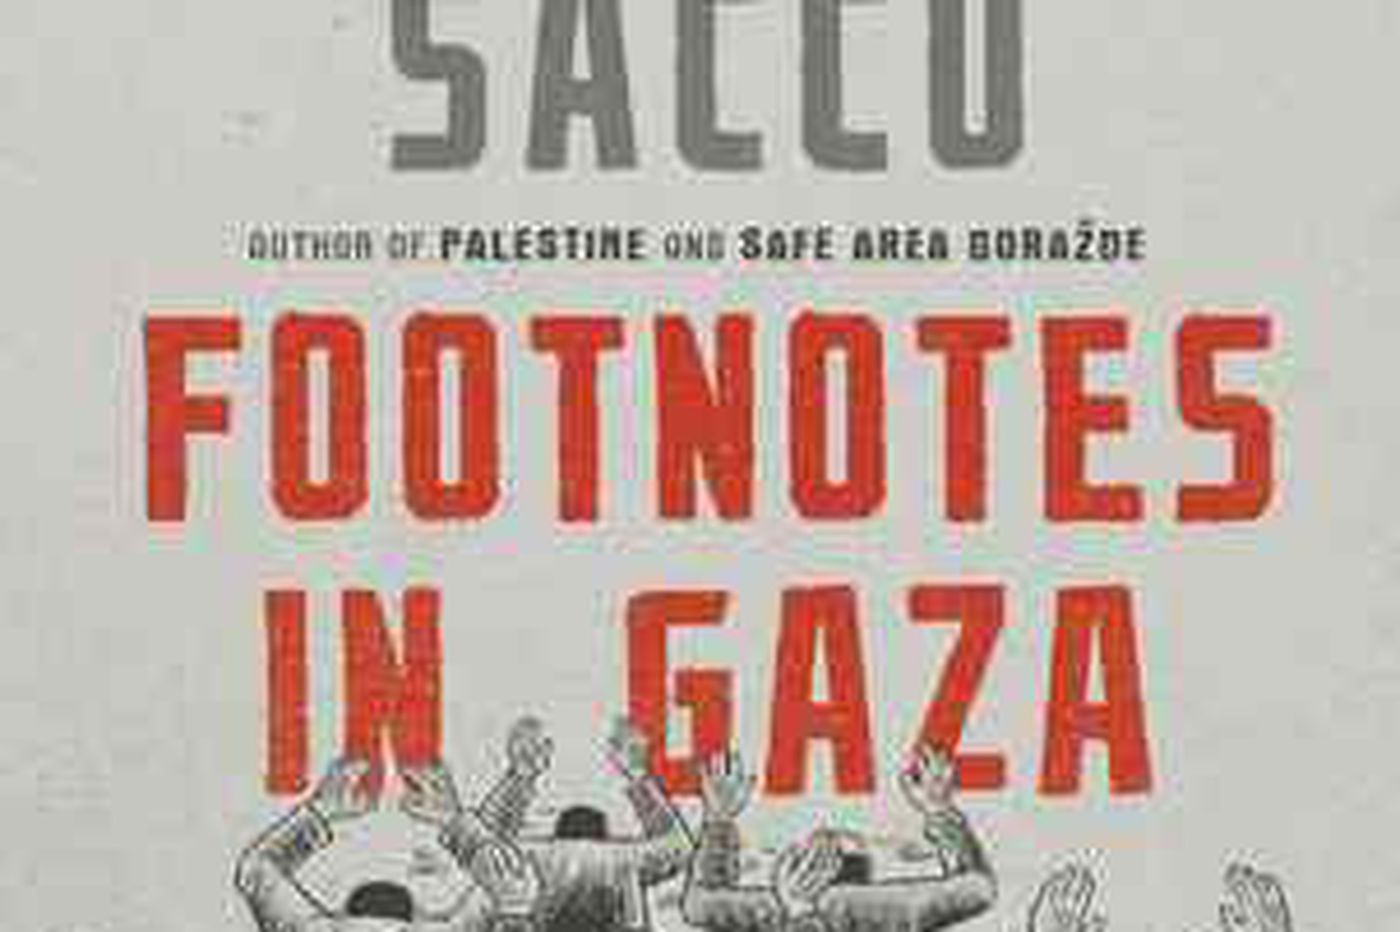 Serious story from Gaza in comic form